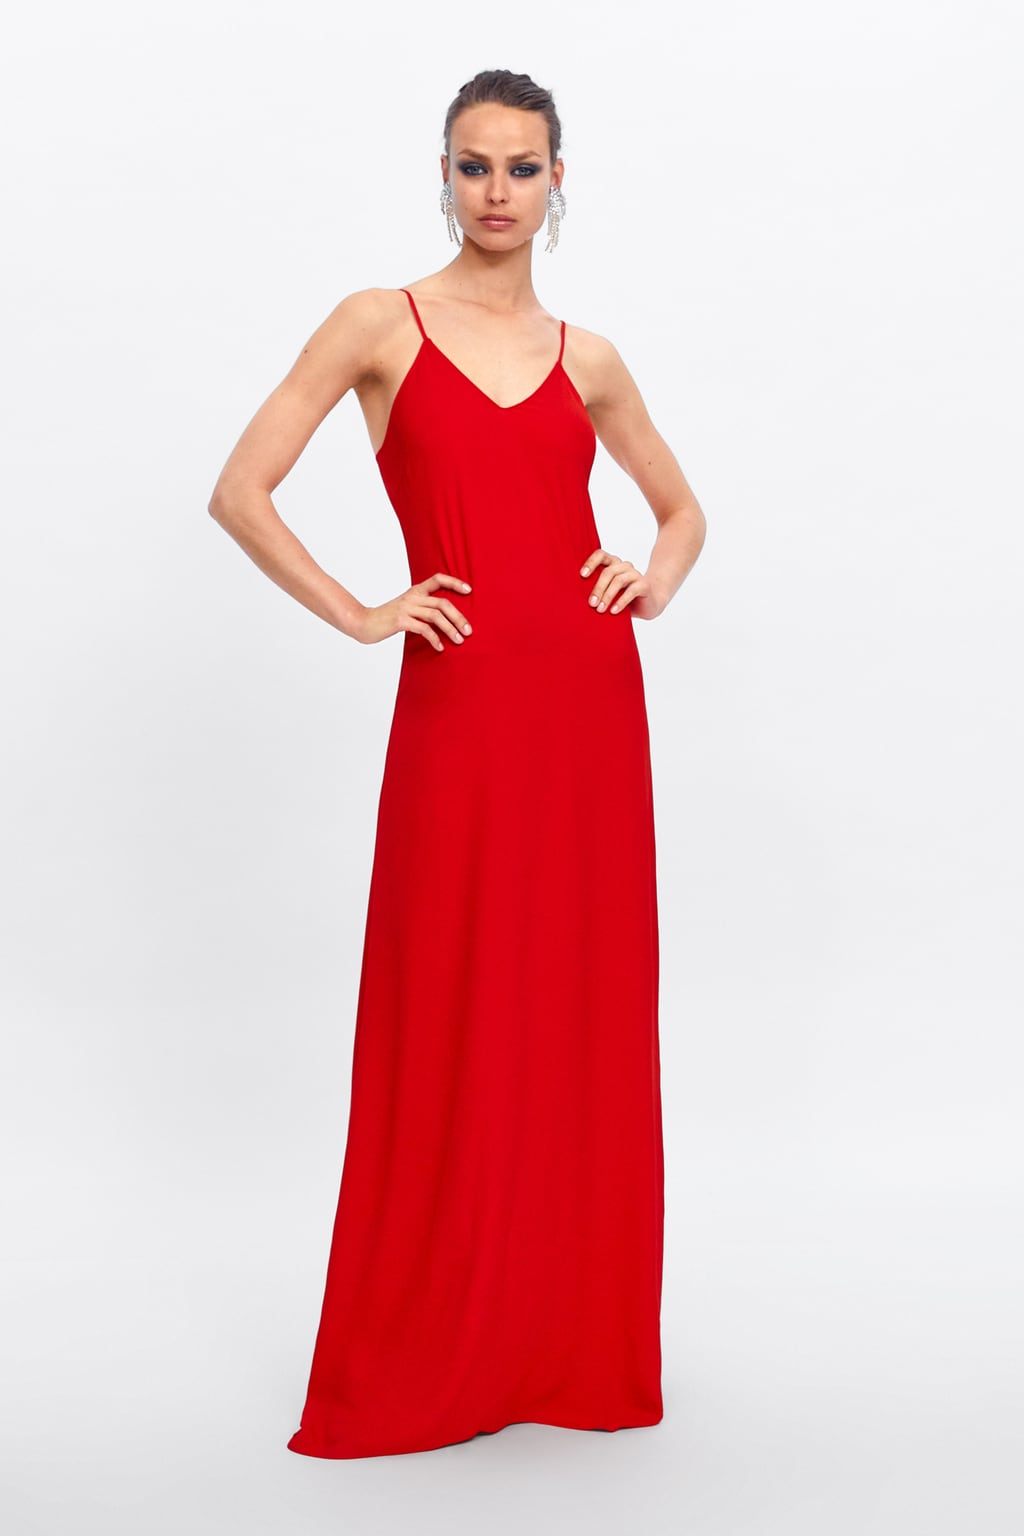 RED LONGSTRAPY DRESS - 69.99 GBP